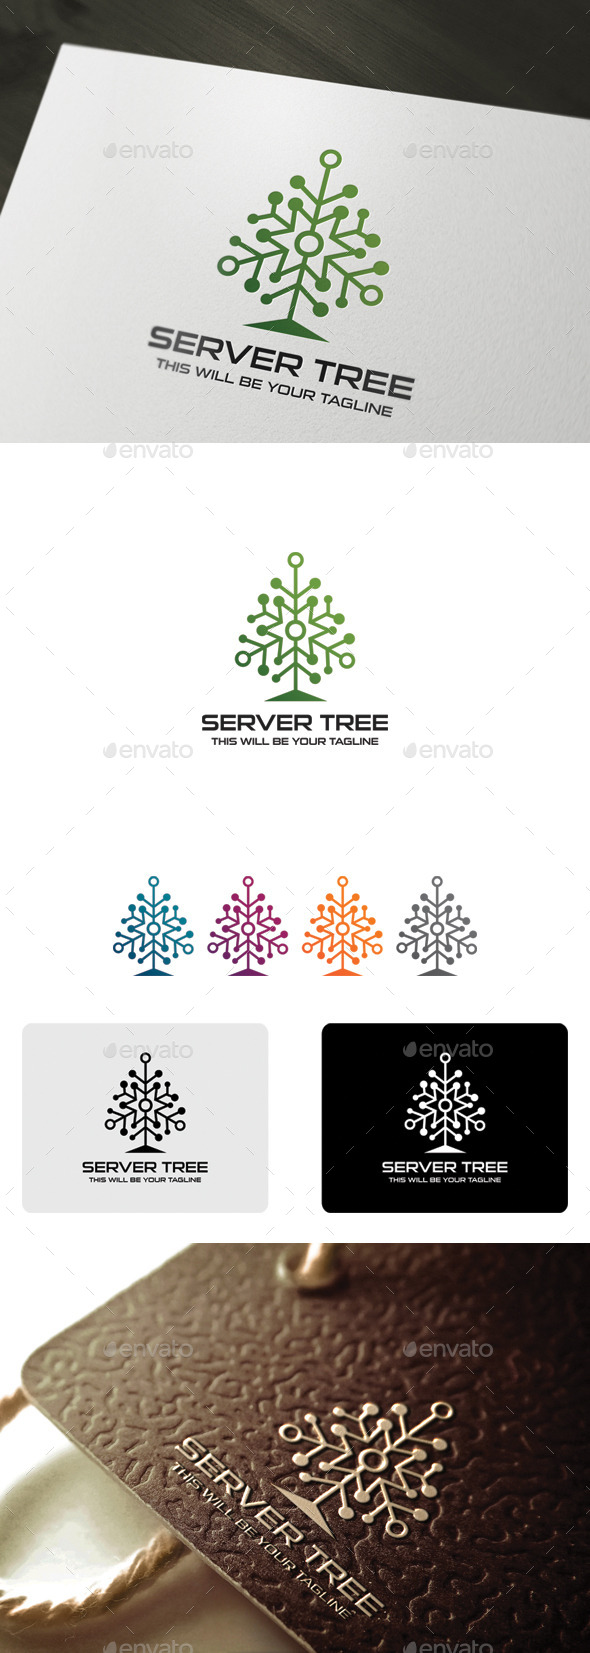 GraphicRiver SERVER TREE 9945860